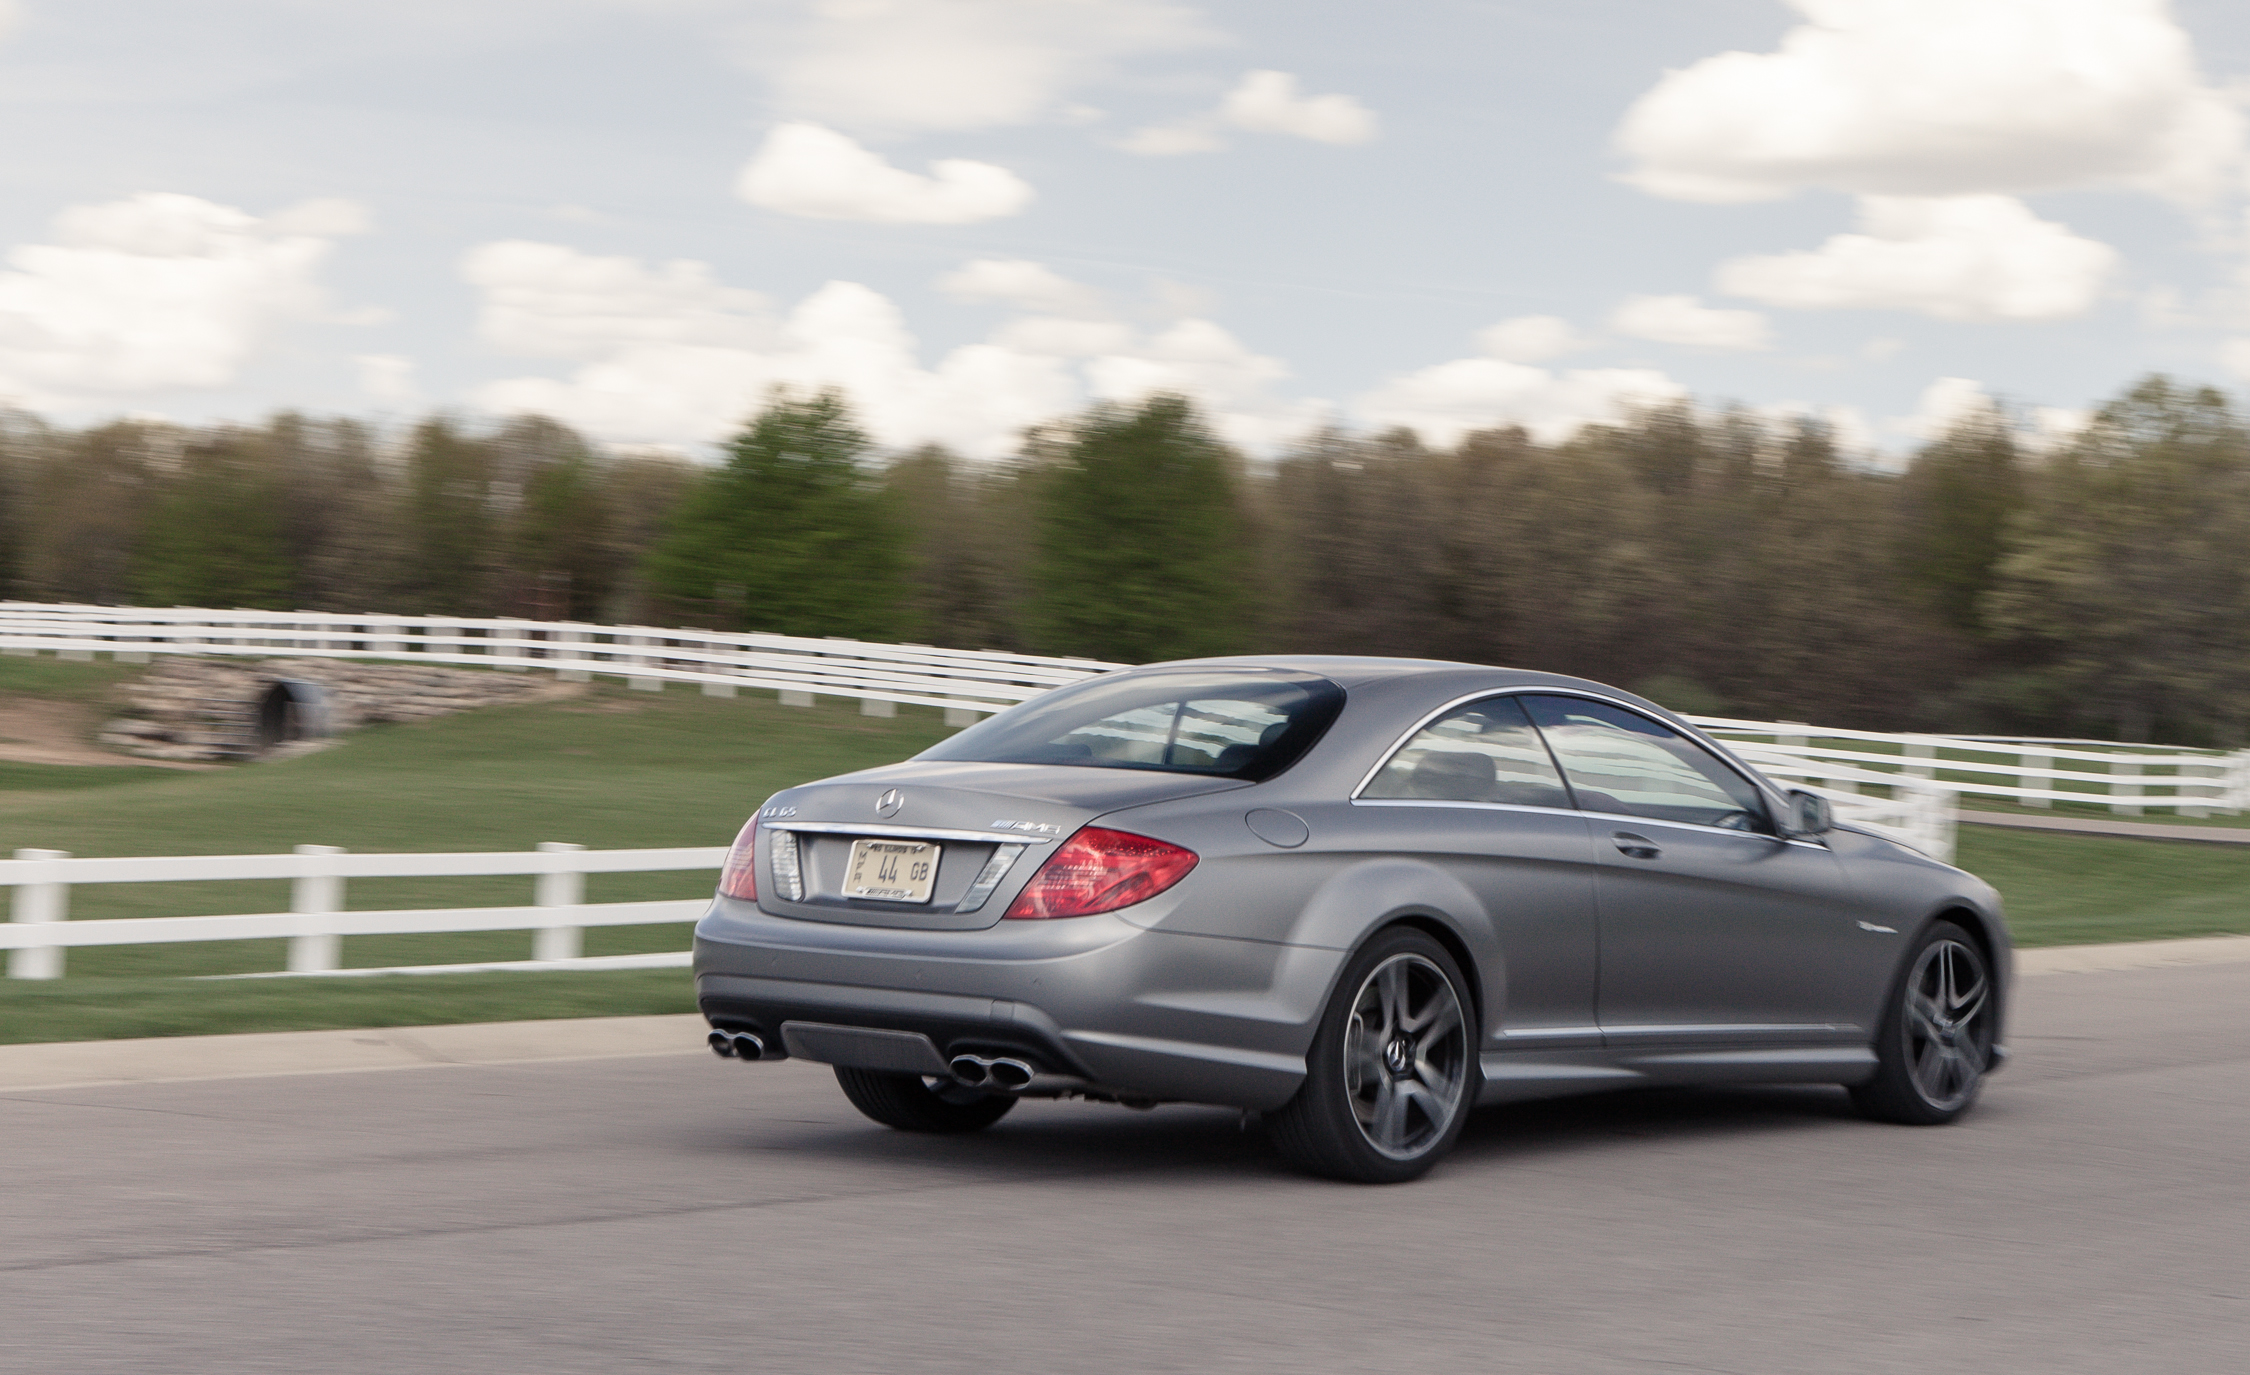 2013 Mercedes Benz CL65 AMG Test Drive Side And Rear View (Photo 25 of 27)